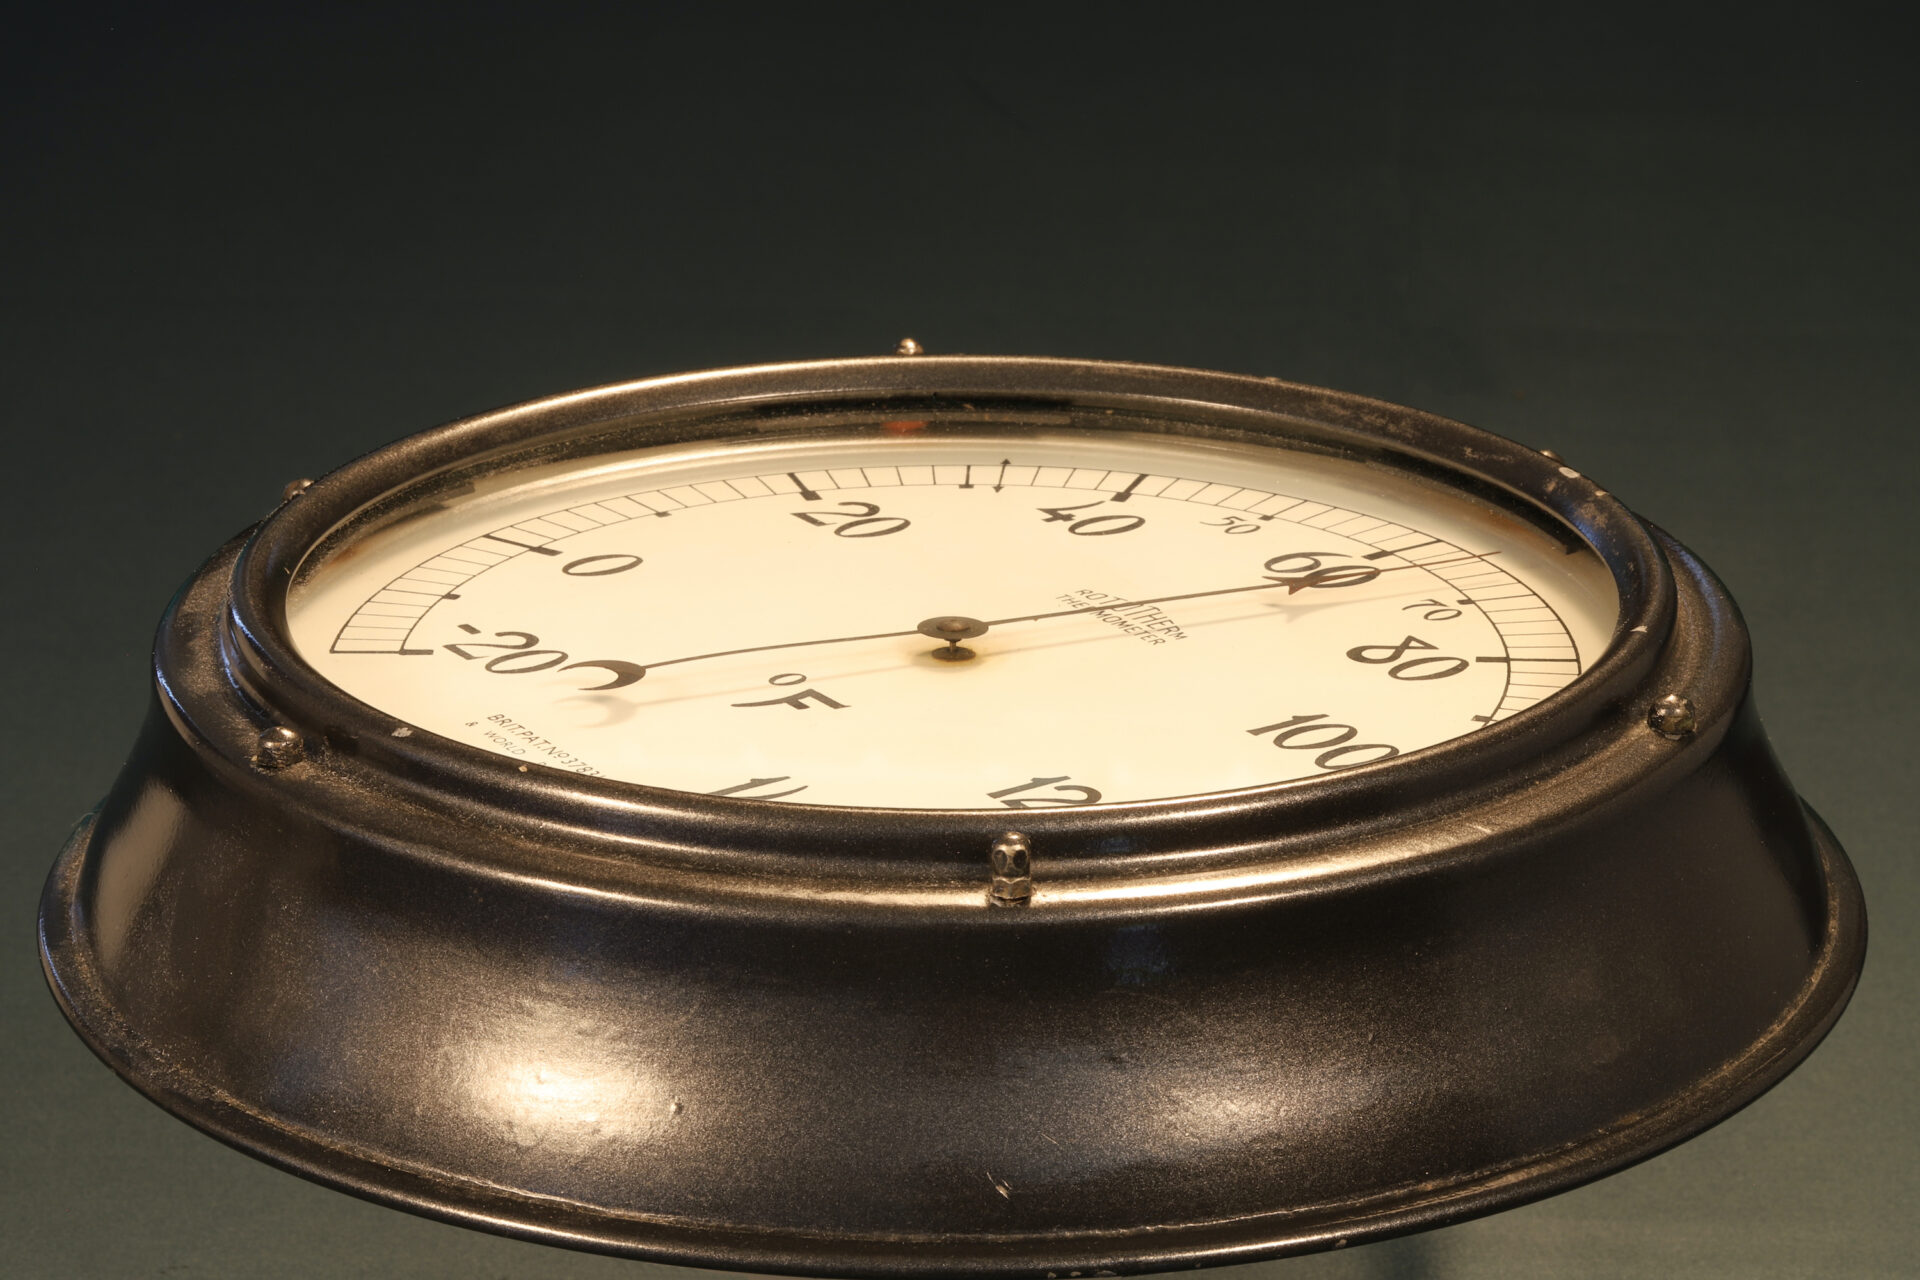 Image of Rototherm Thermometer c1932 taken from side